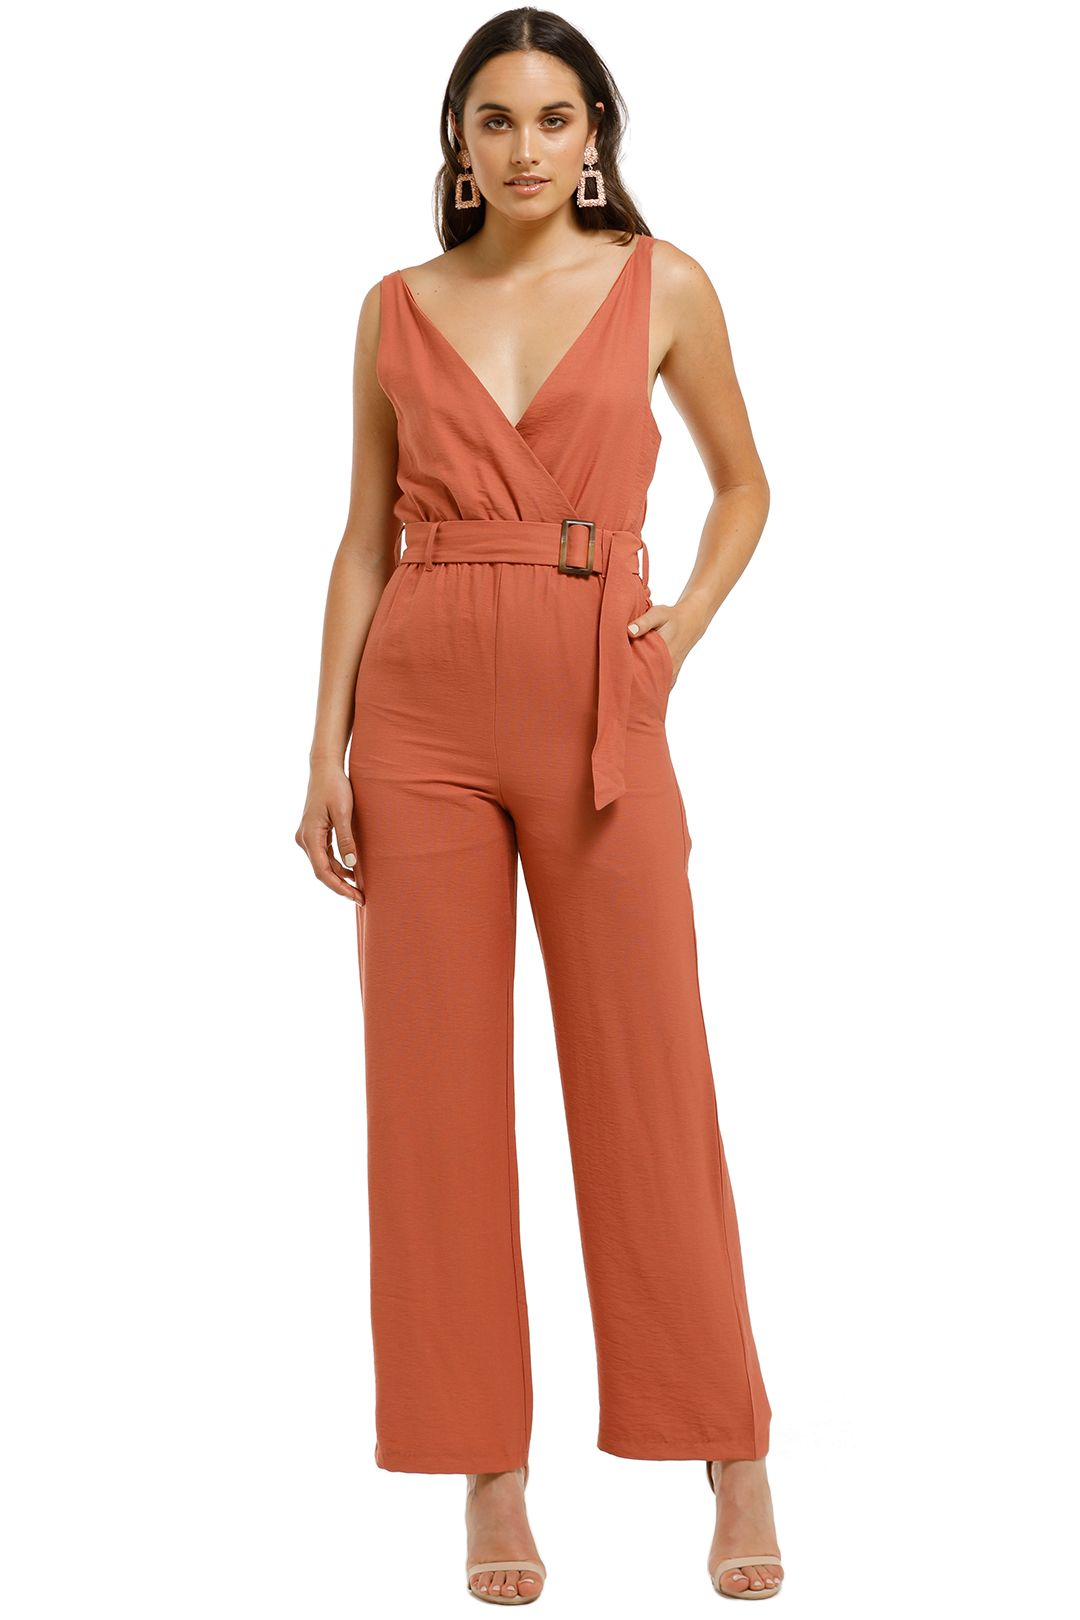 Wish-Frida-Jumpsuit-Terracotta-Front